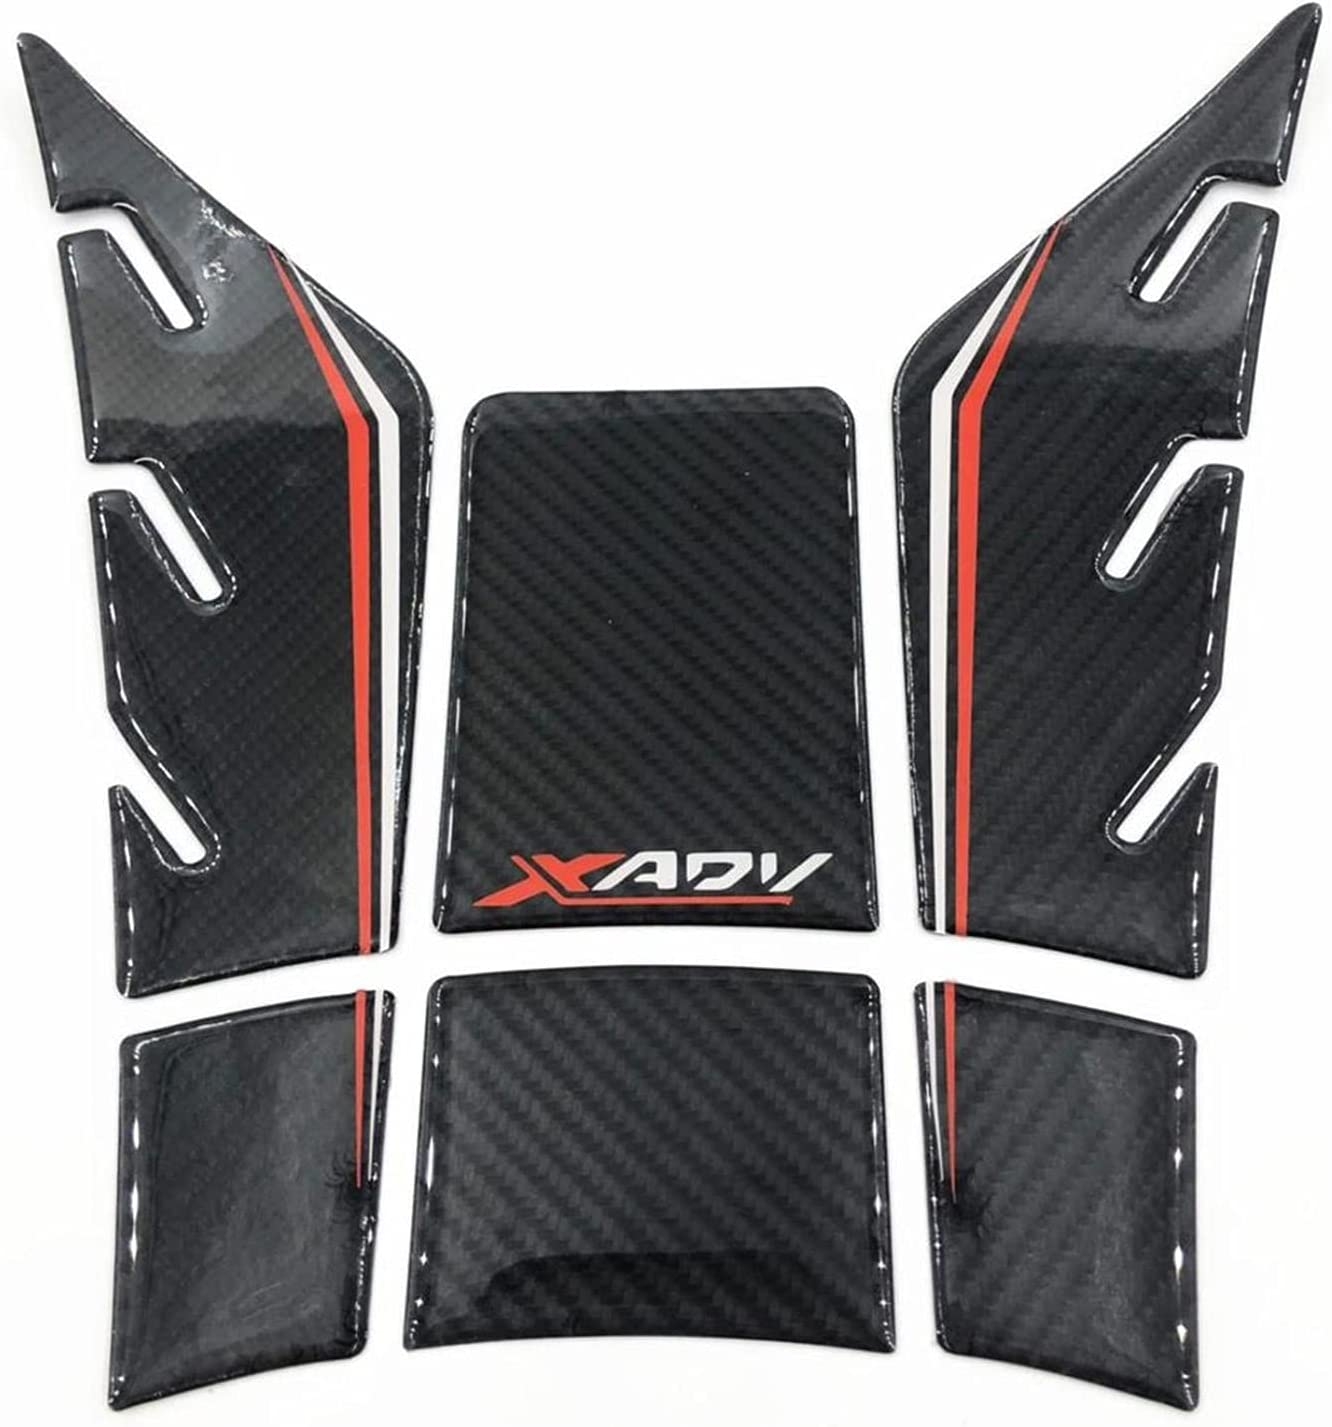 Motorcycle Tank Sticker XADV750 3D Ranking TOP17 Gel T Carbon Fiber National products